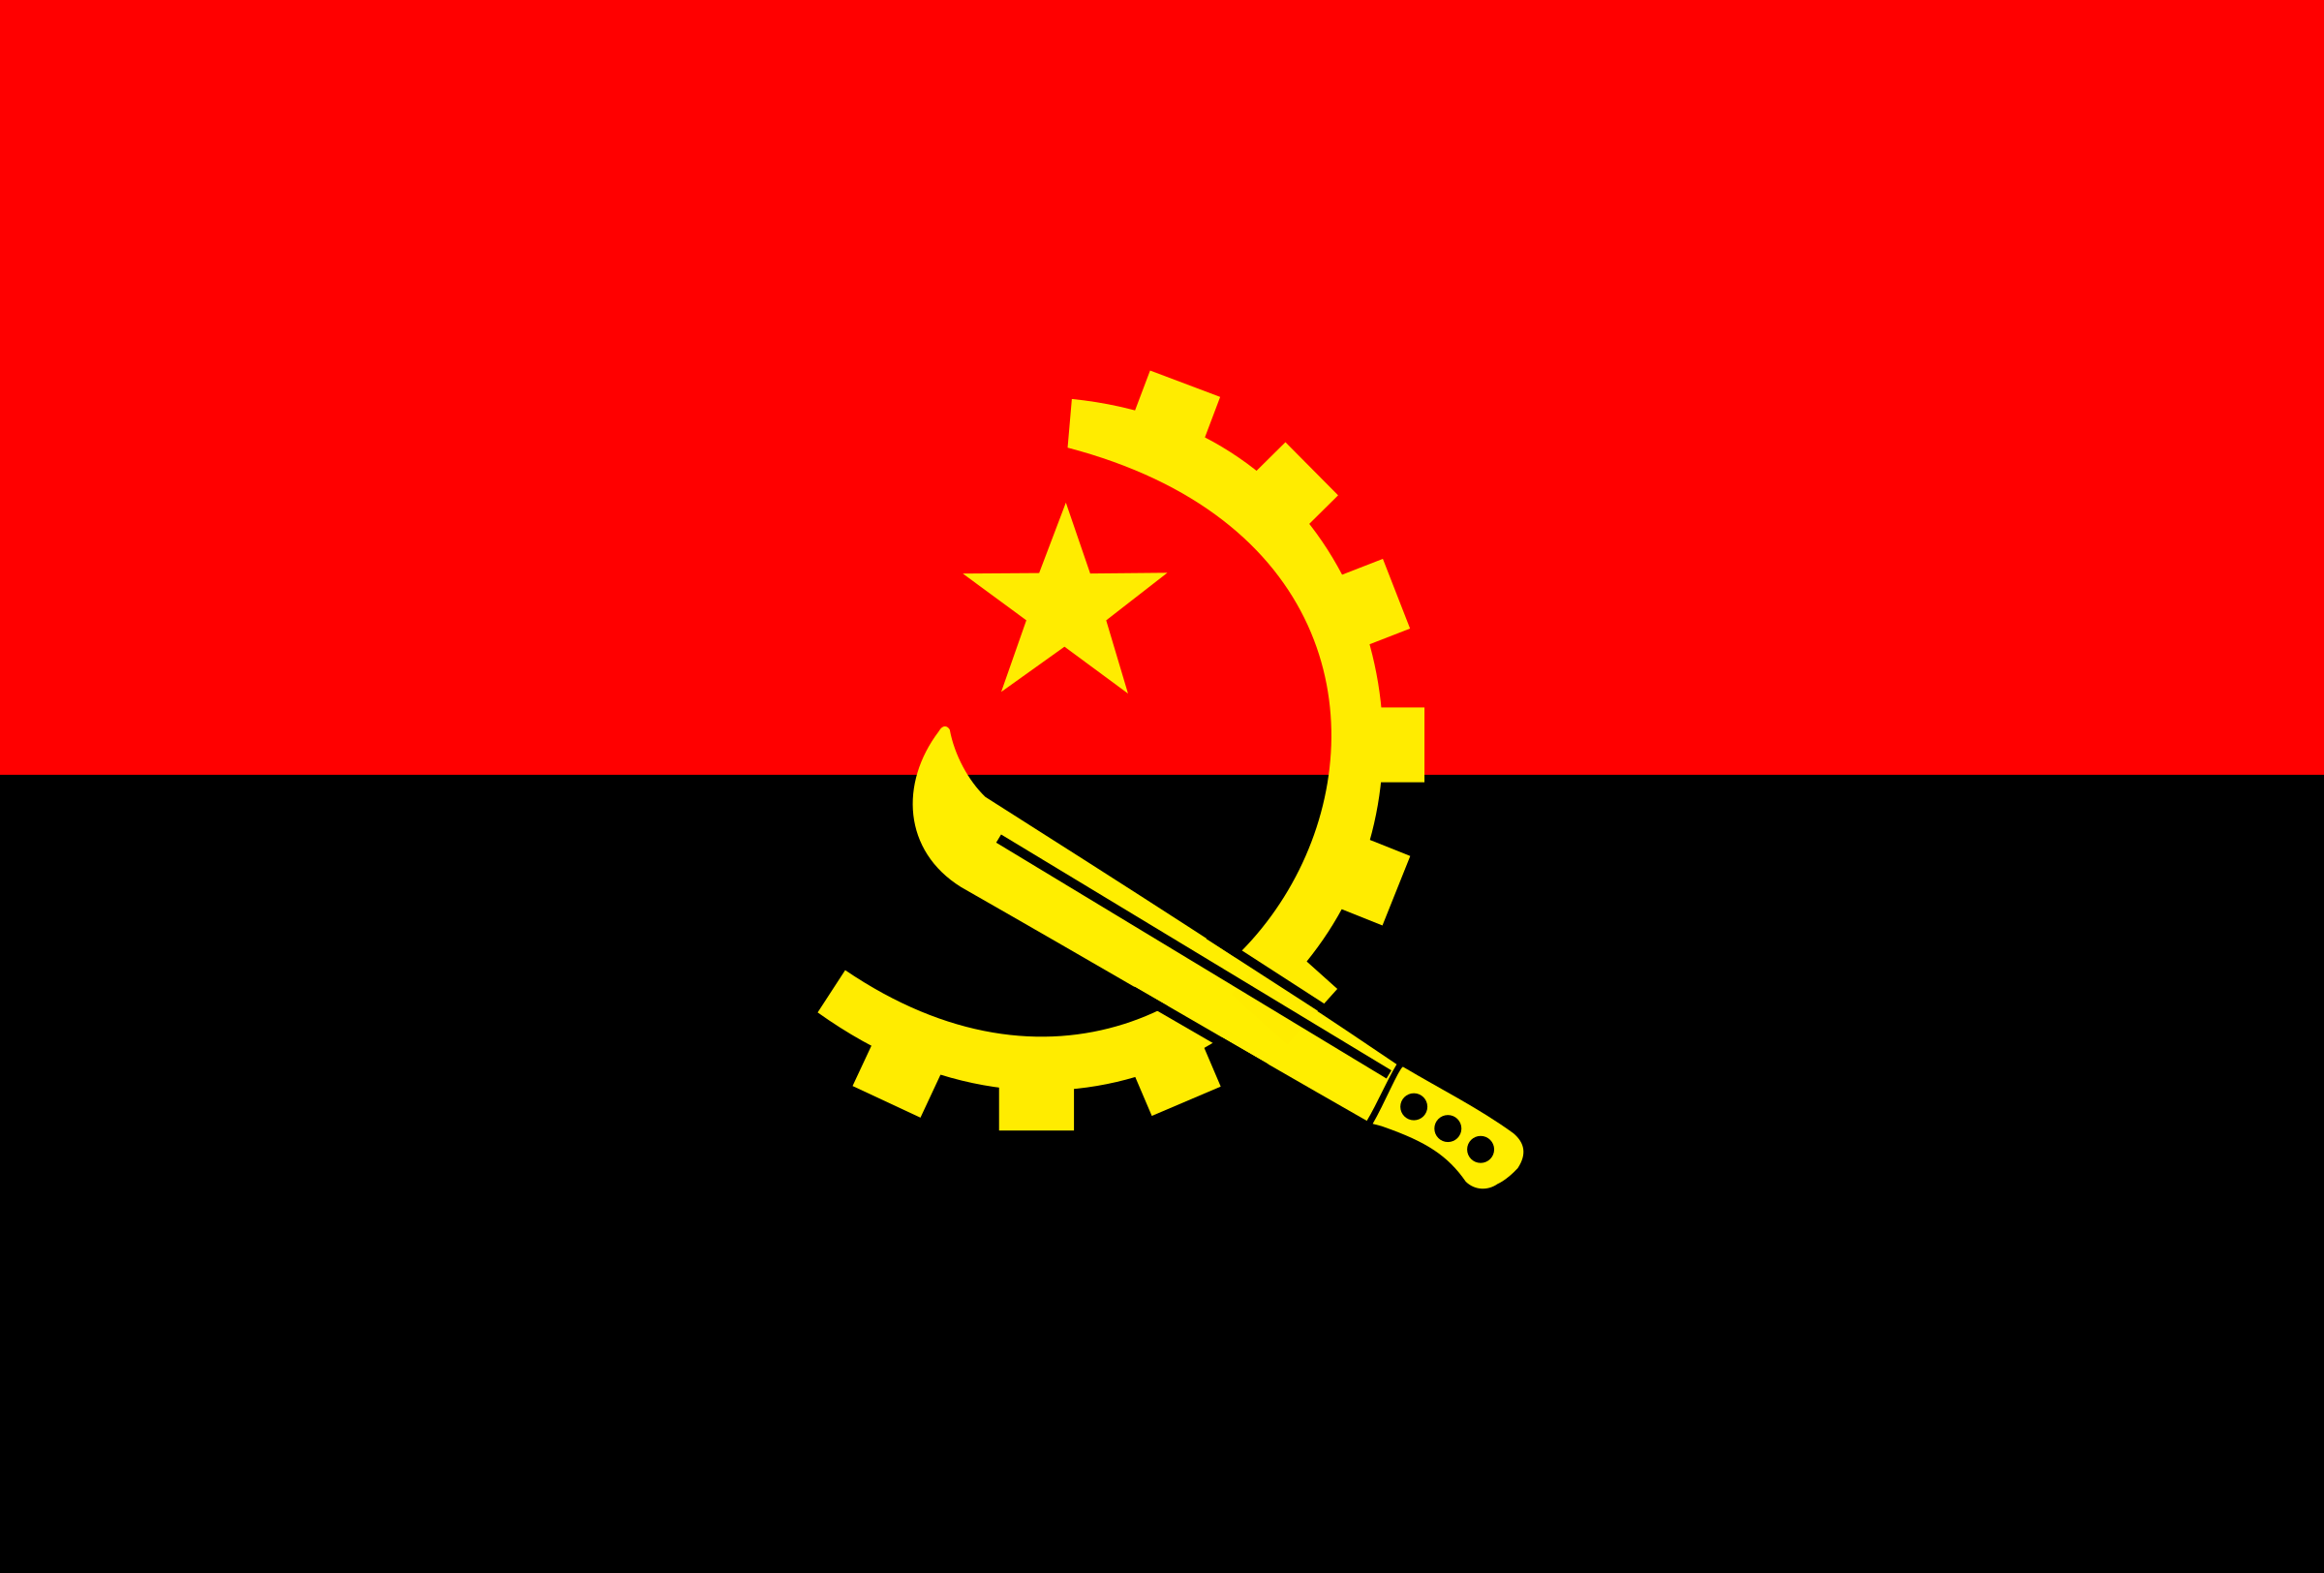 angola by Anonymous